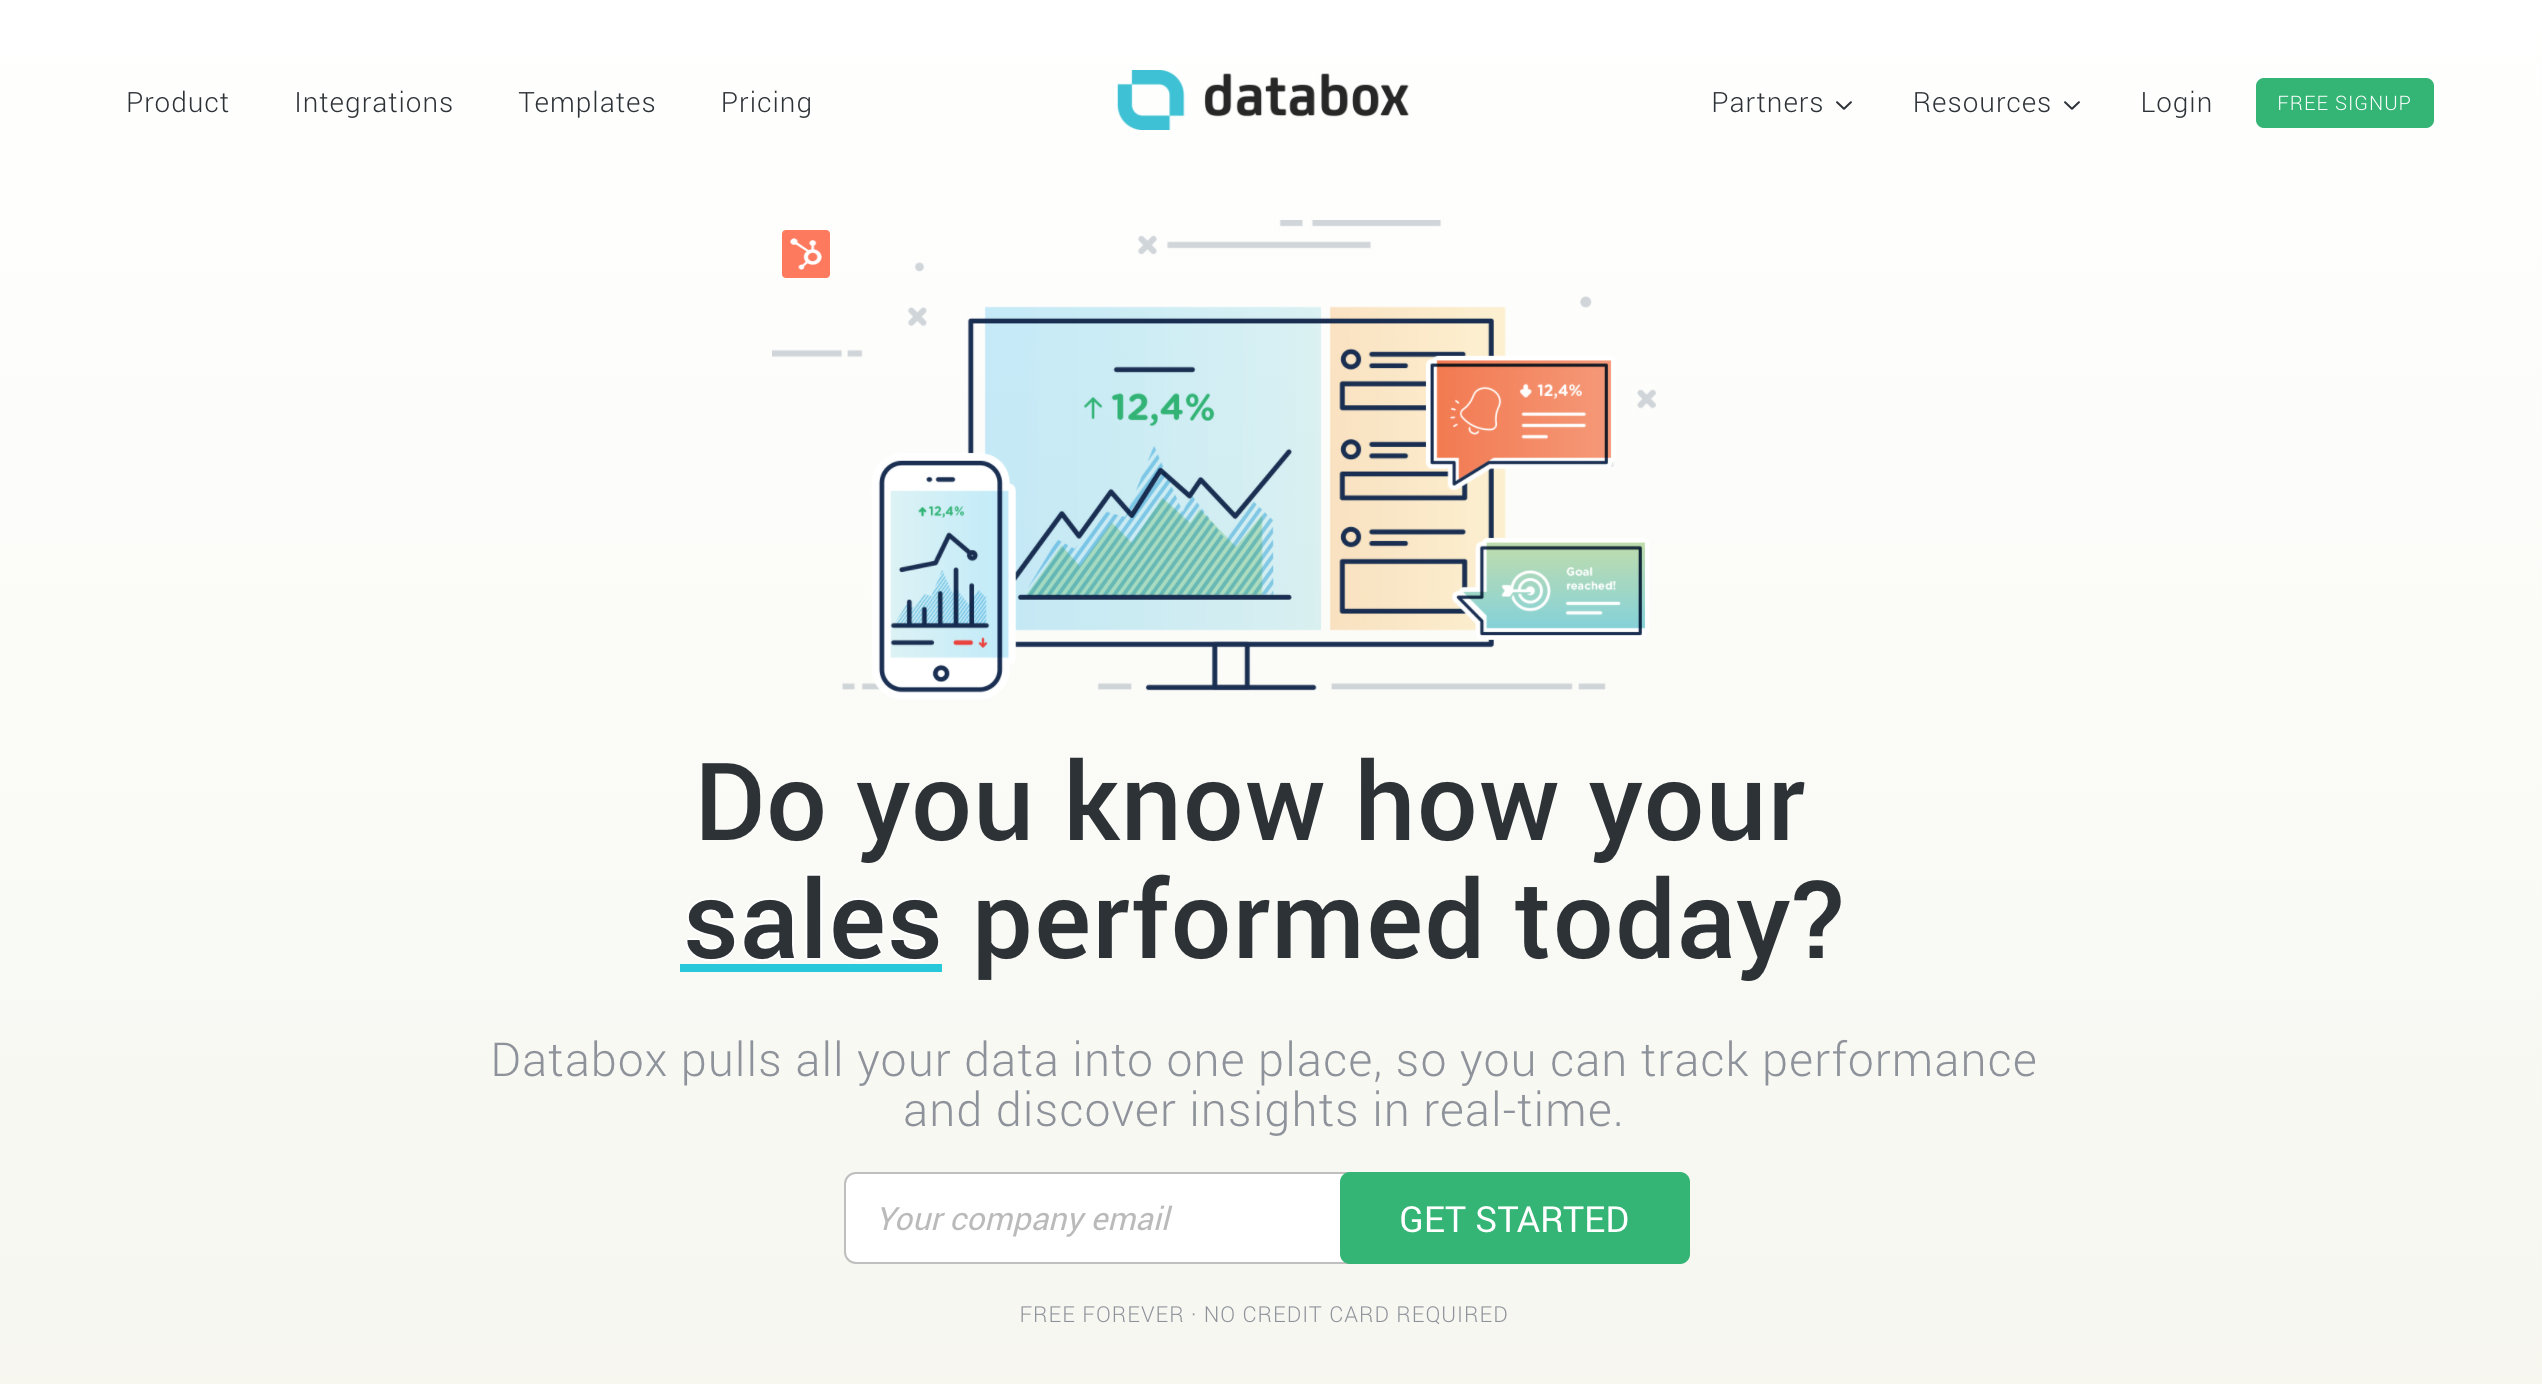 databox saas marketing tools